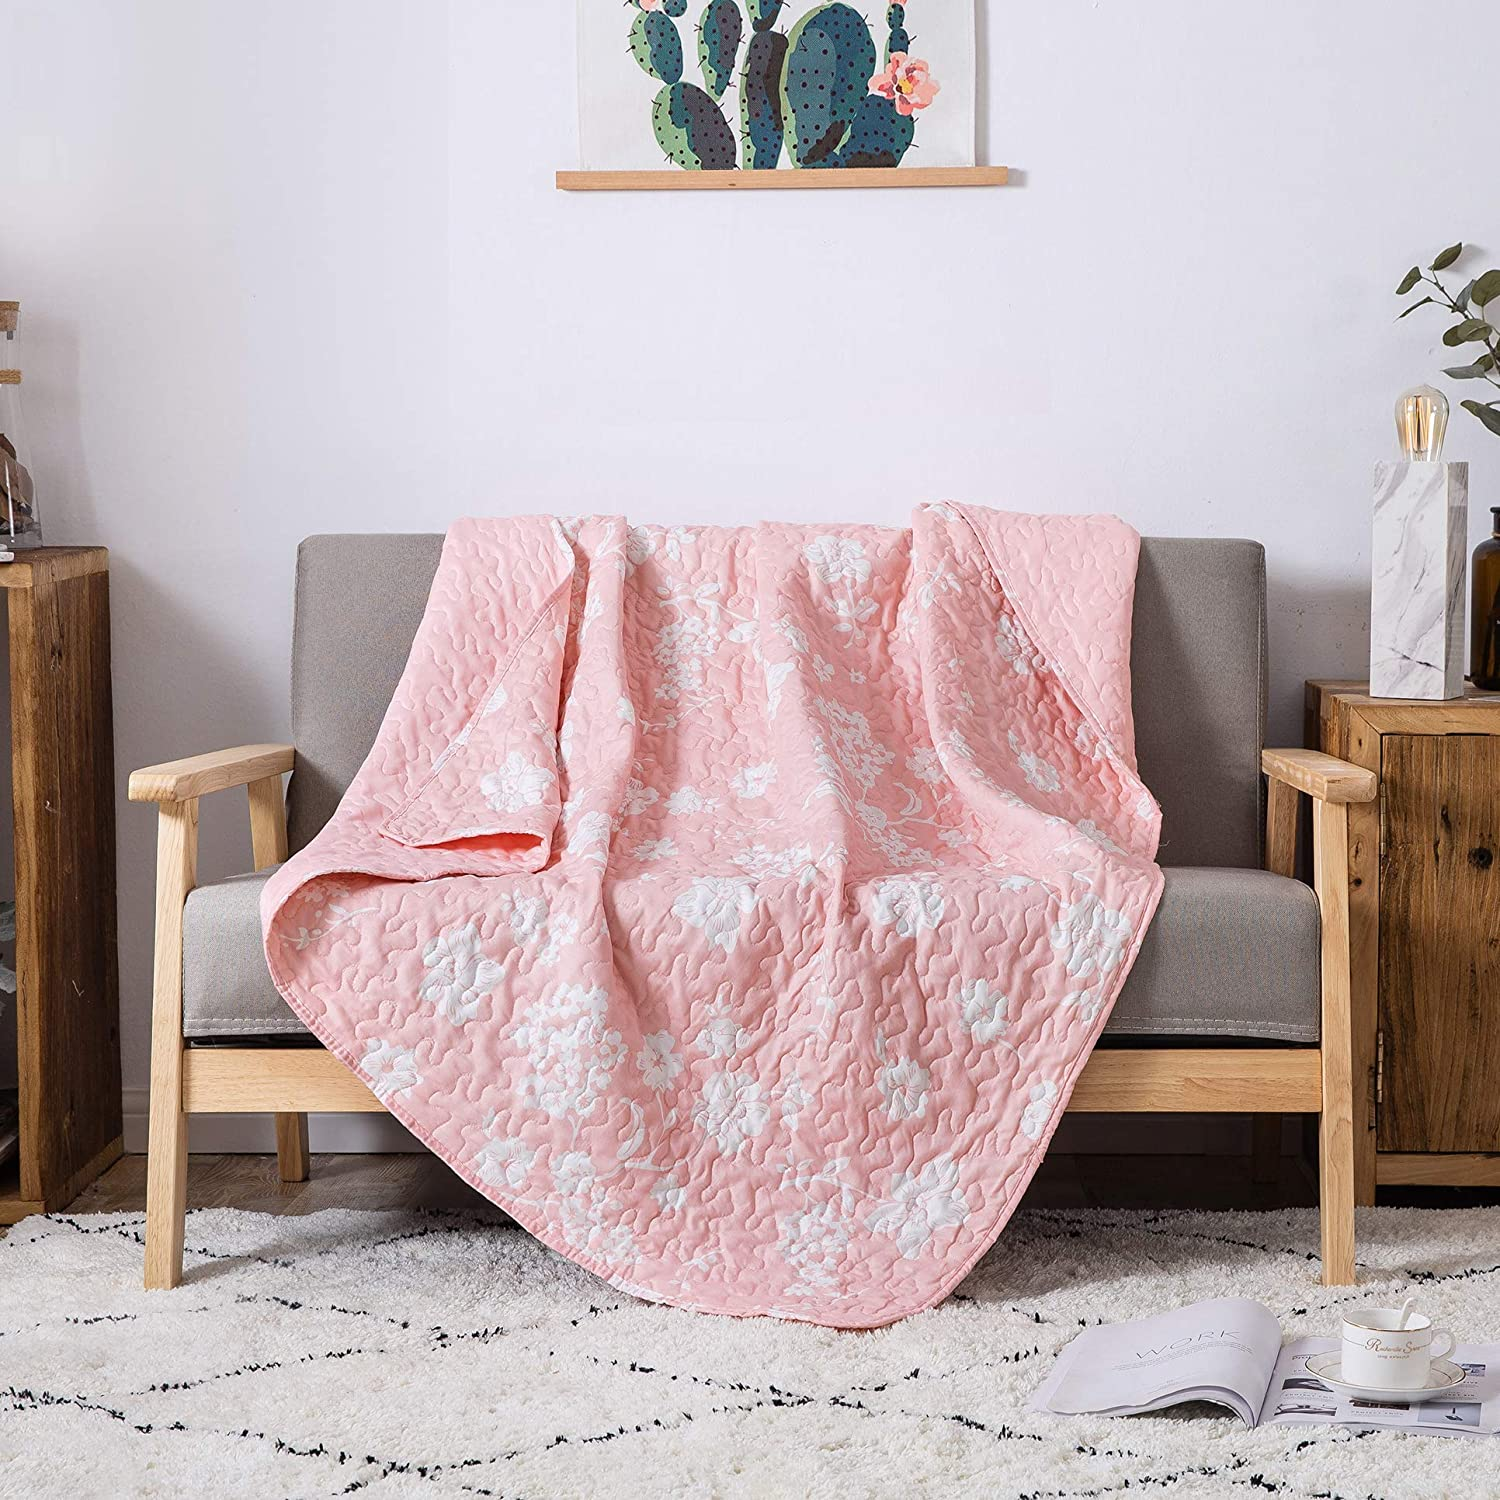 50 x 60 Pink Lap Quilt for Couch and Bed Soul /& Lane Petal Perfection Quilted Throw Blanket